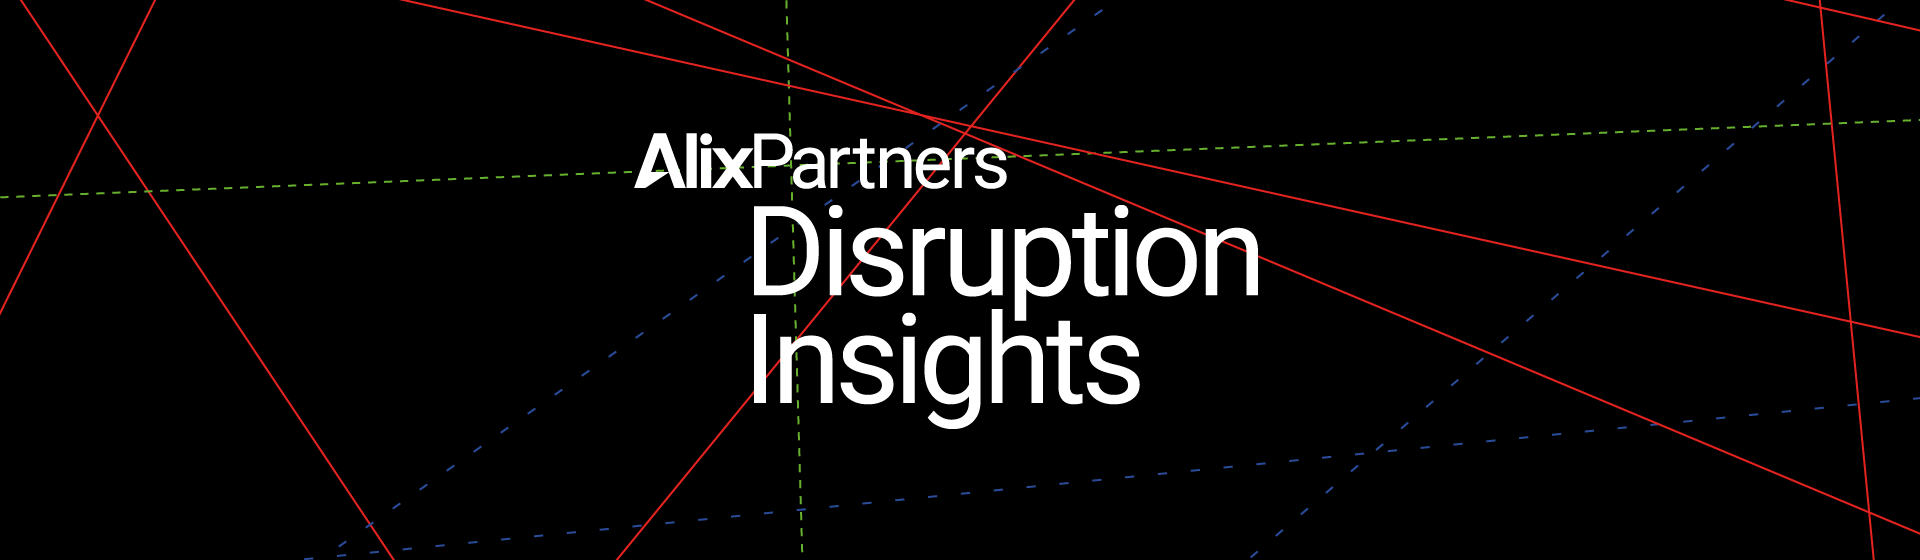 alixpartners disruption insights business strategy 2020